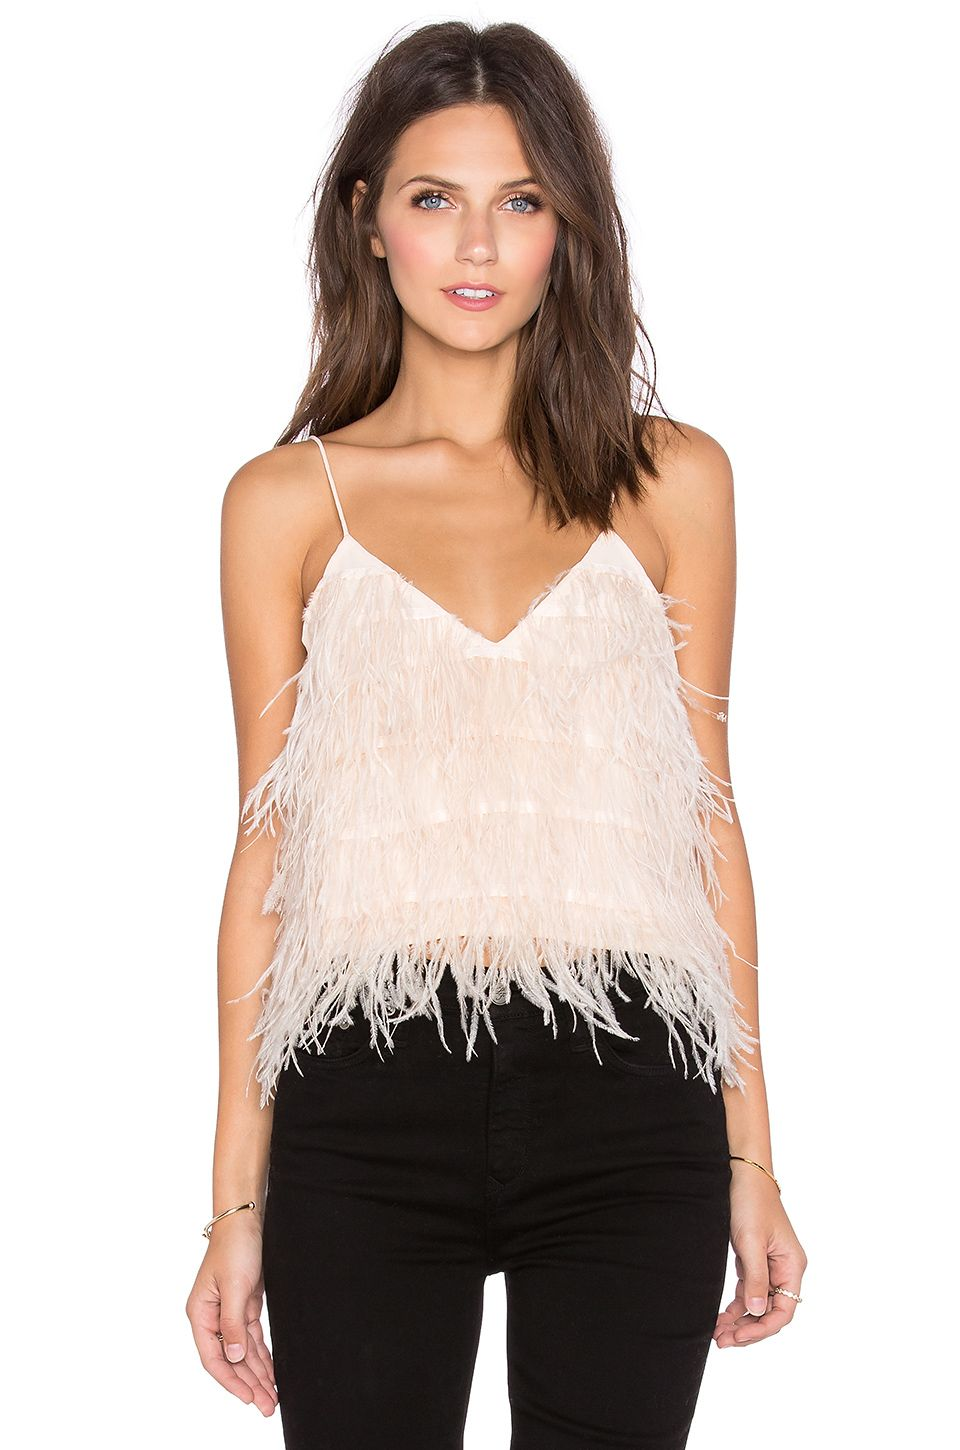 54b86f03eec667 Lucy Paris Tiny Dancer Feather Cami in Blush